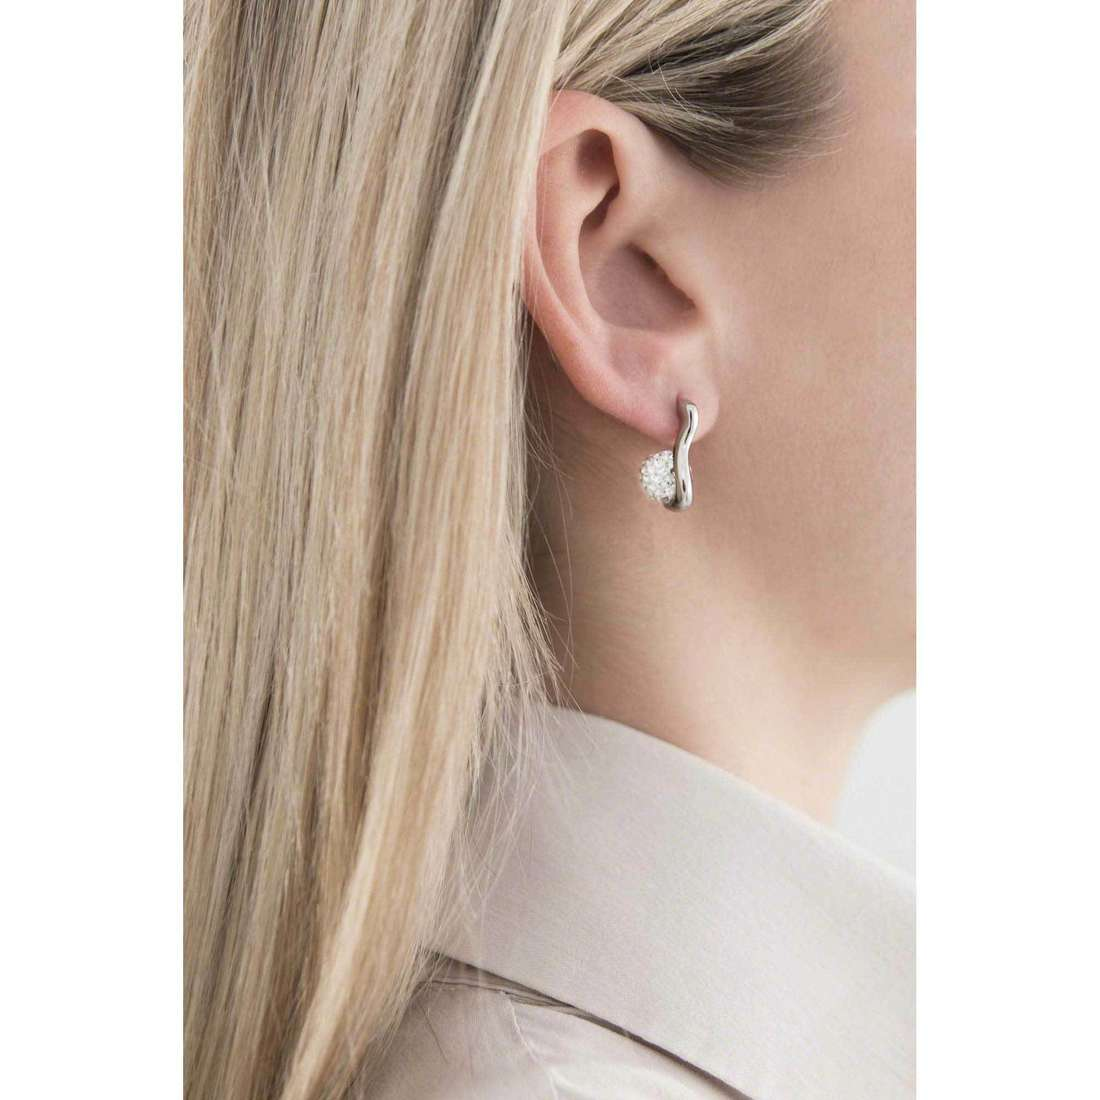 Morellato earrings Luminosa woman SAET05 indosso